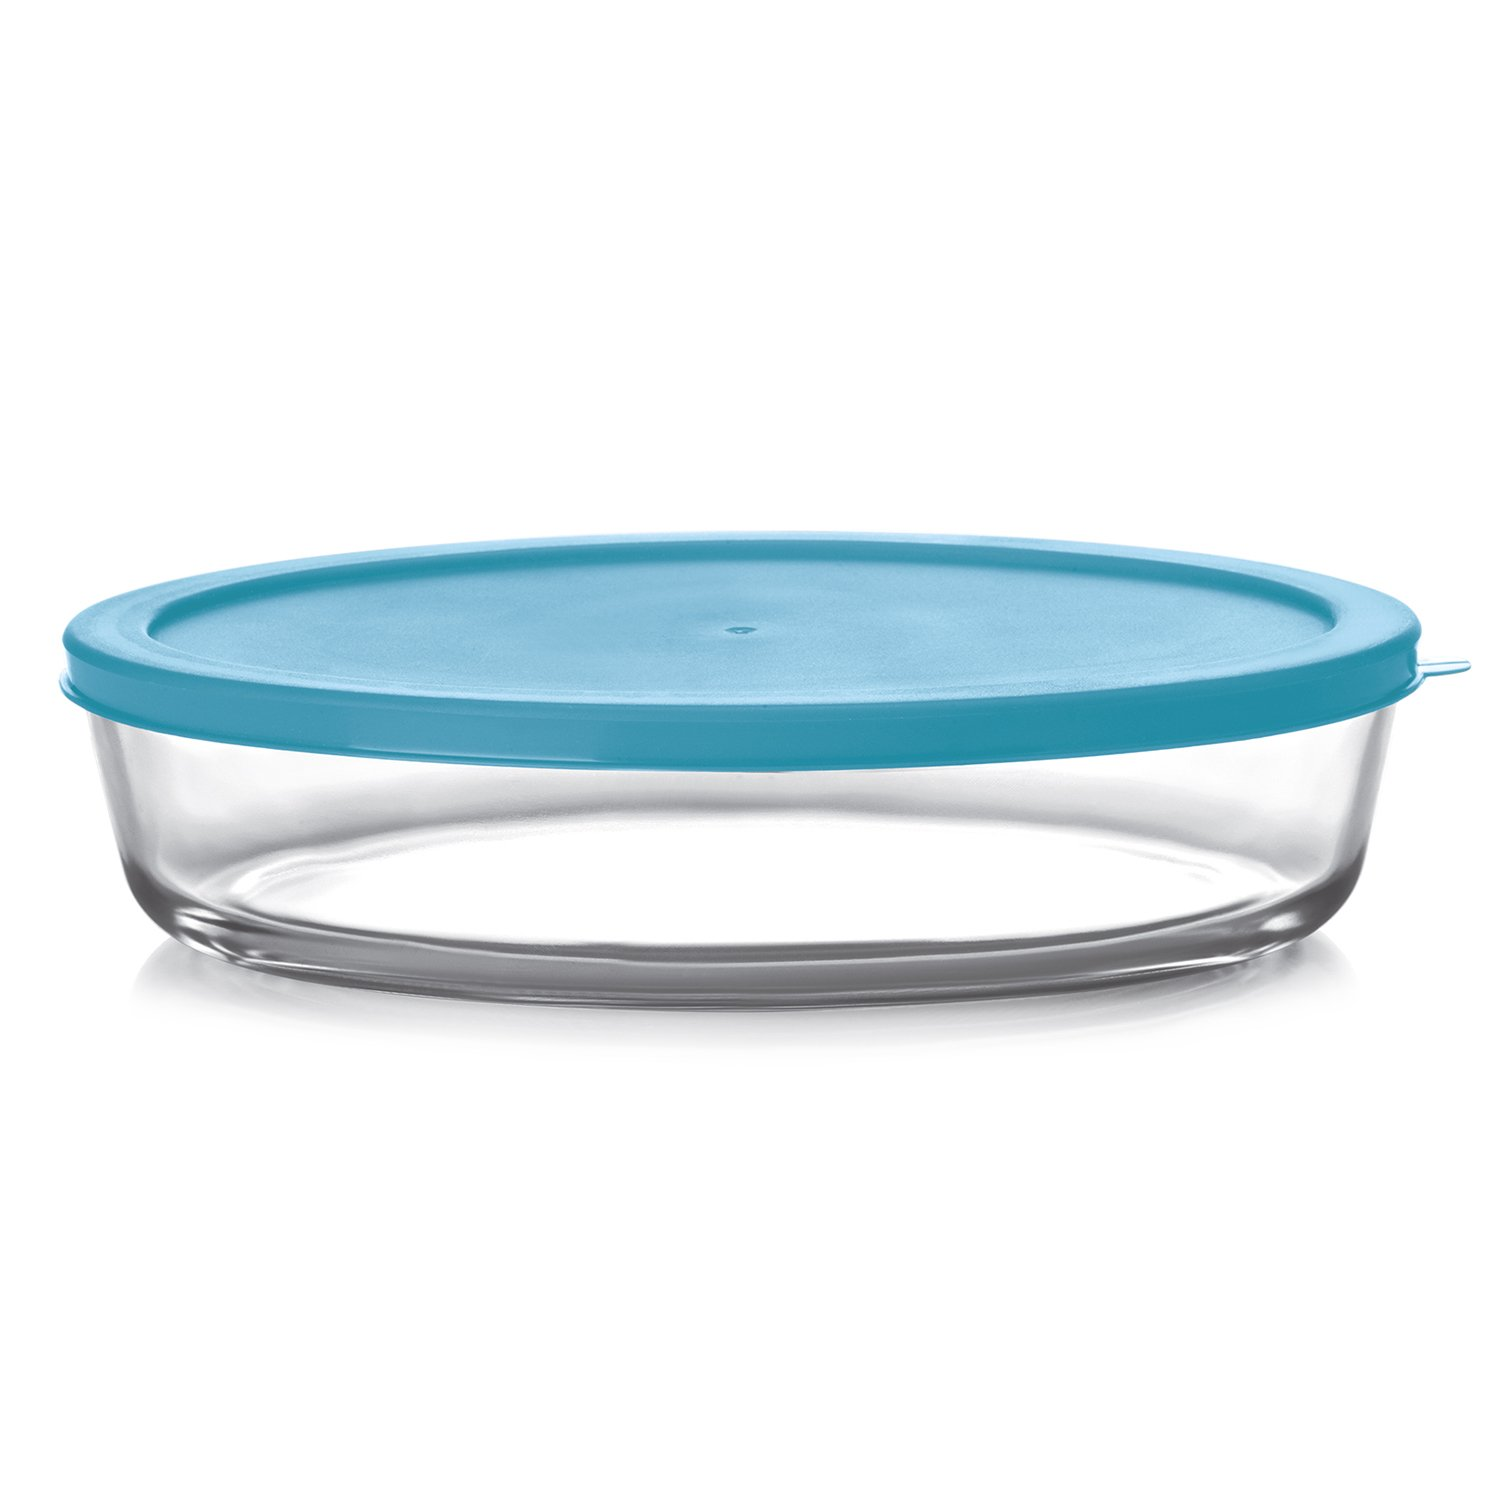 Cello Prego Cosmo Oval Glass Baking Dish with Lid, 1.6 Litres/26.1cm, Clear